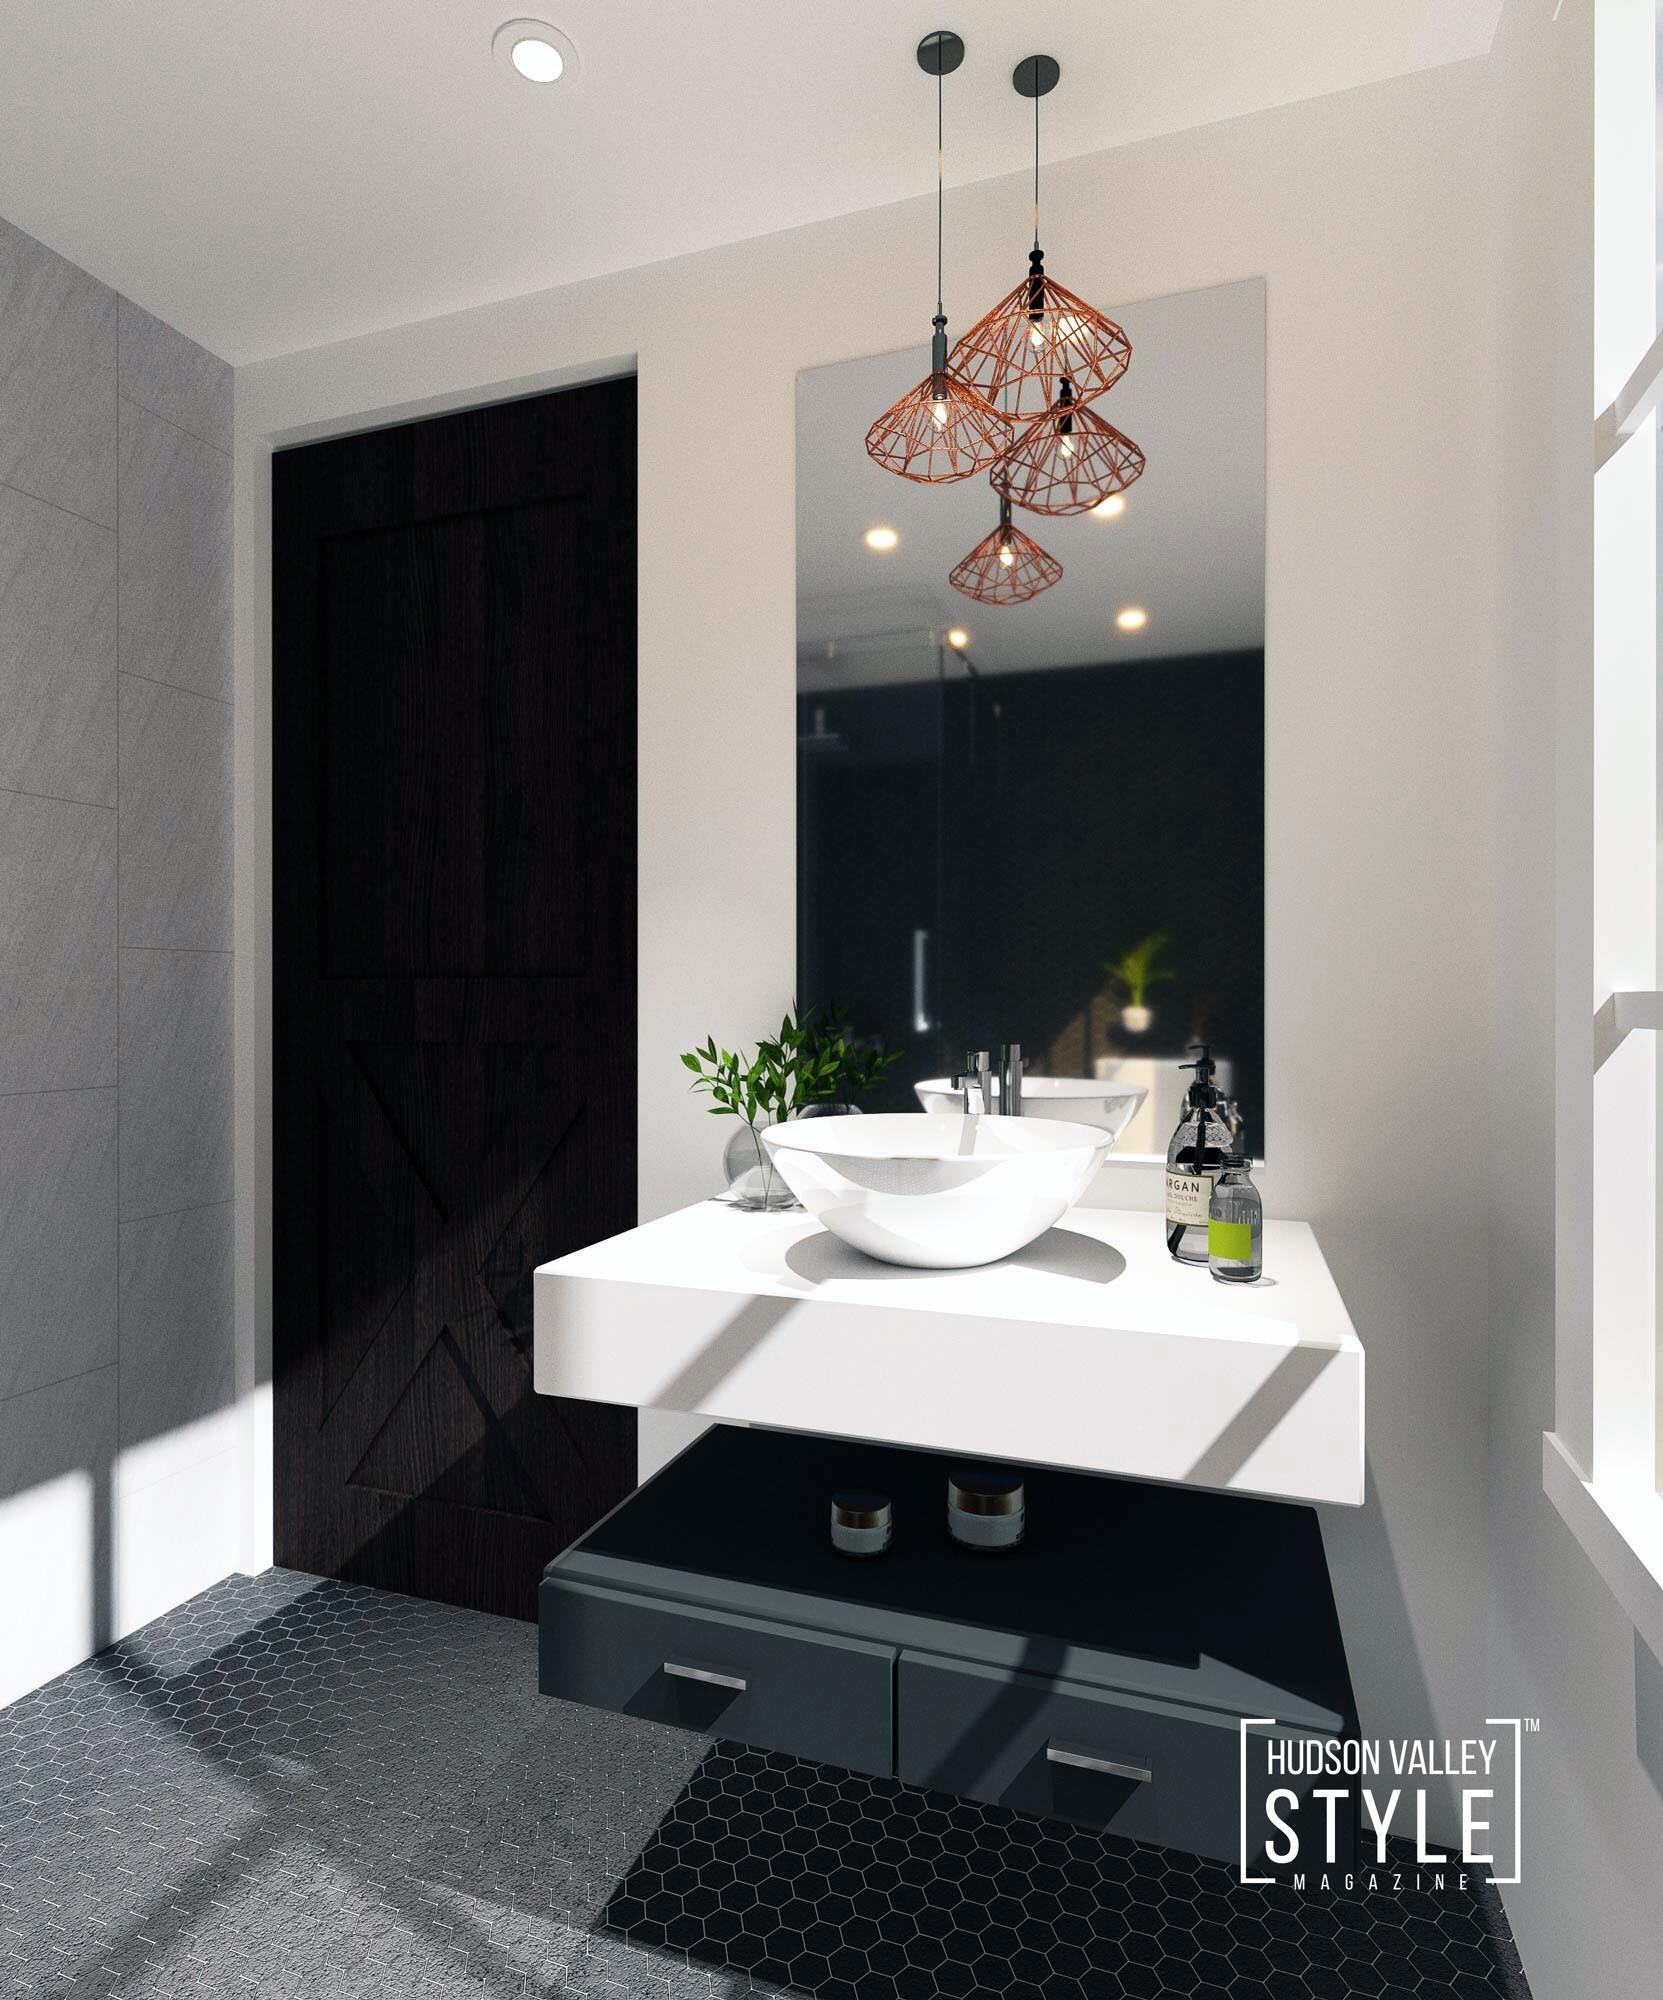 Transform Your Bathroom into a Luxurious Retreat with these Interior Design Tips